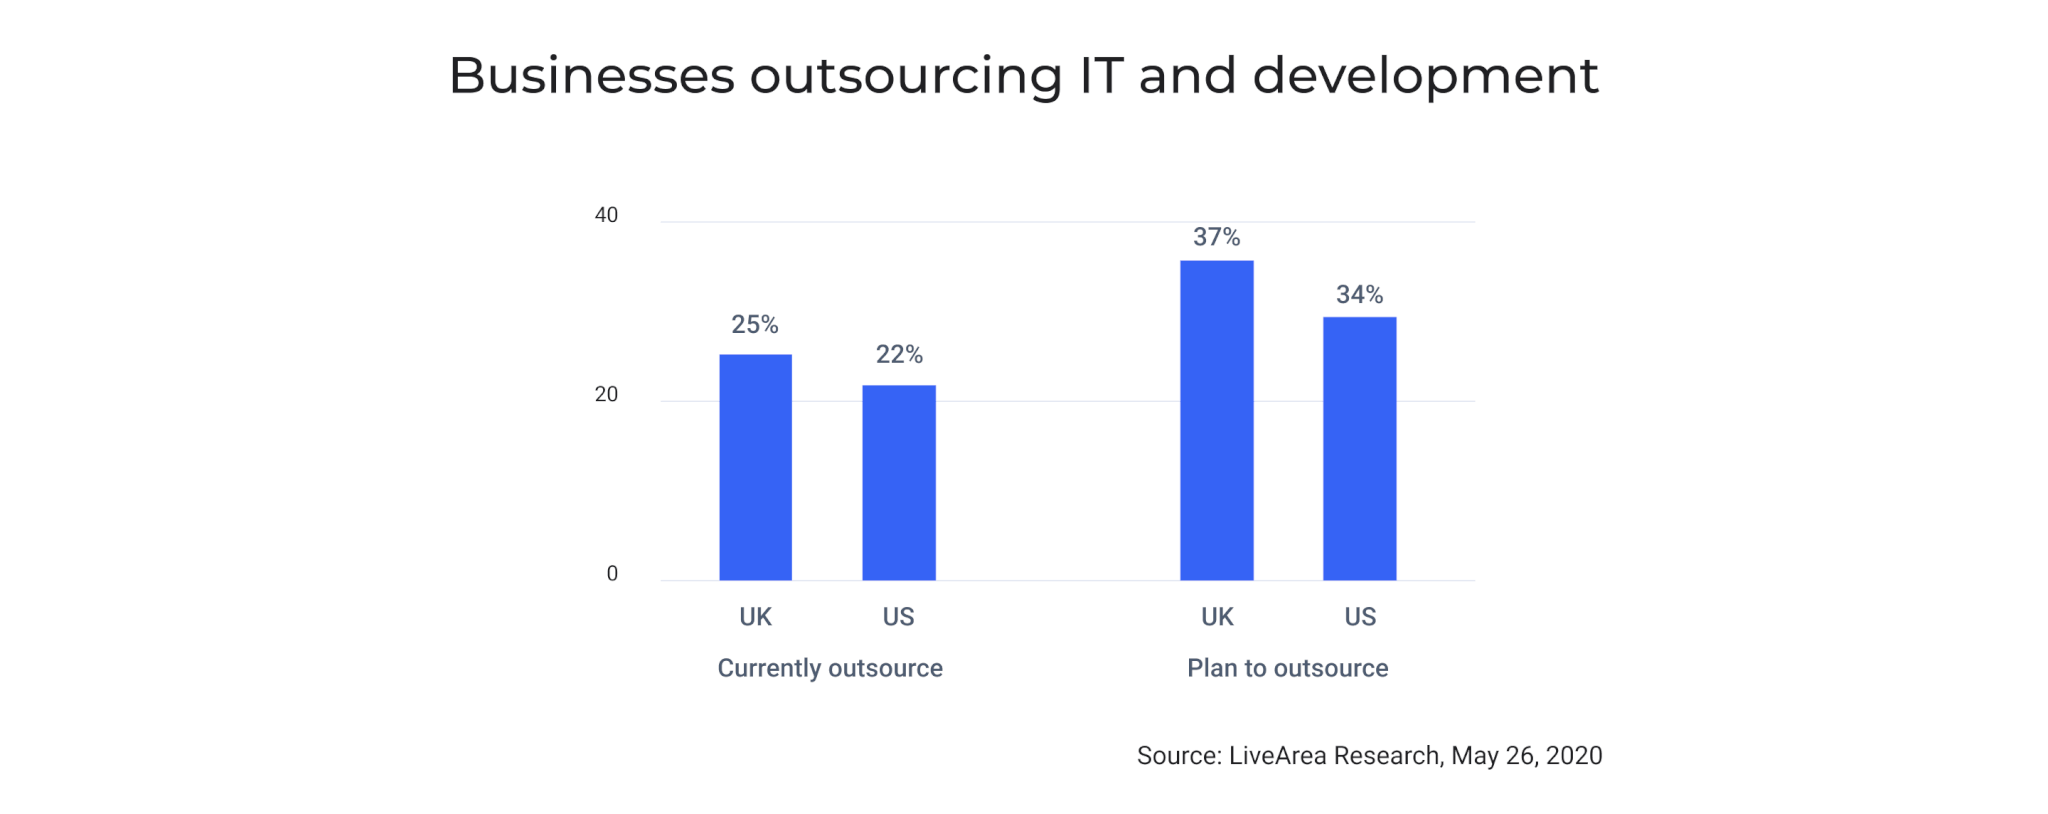 Businesses outsourcing IT